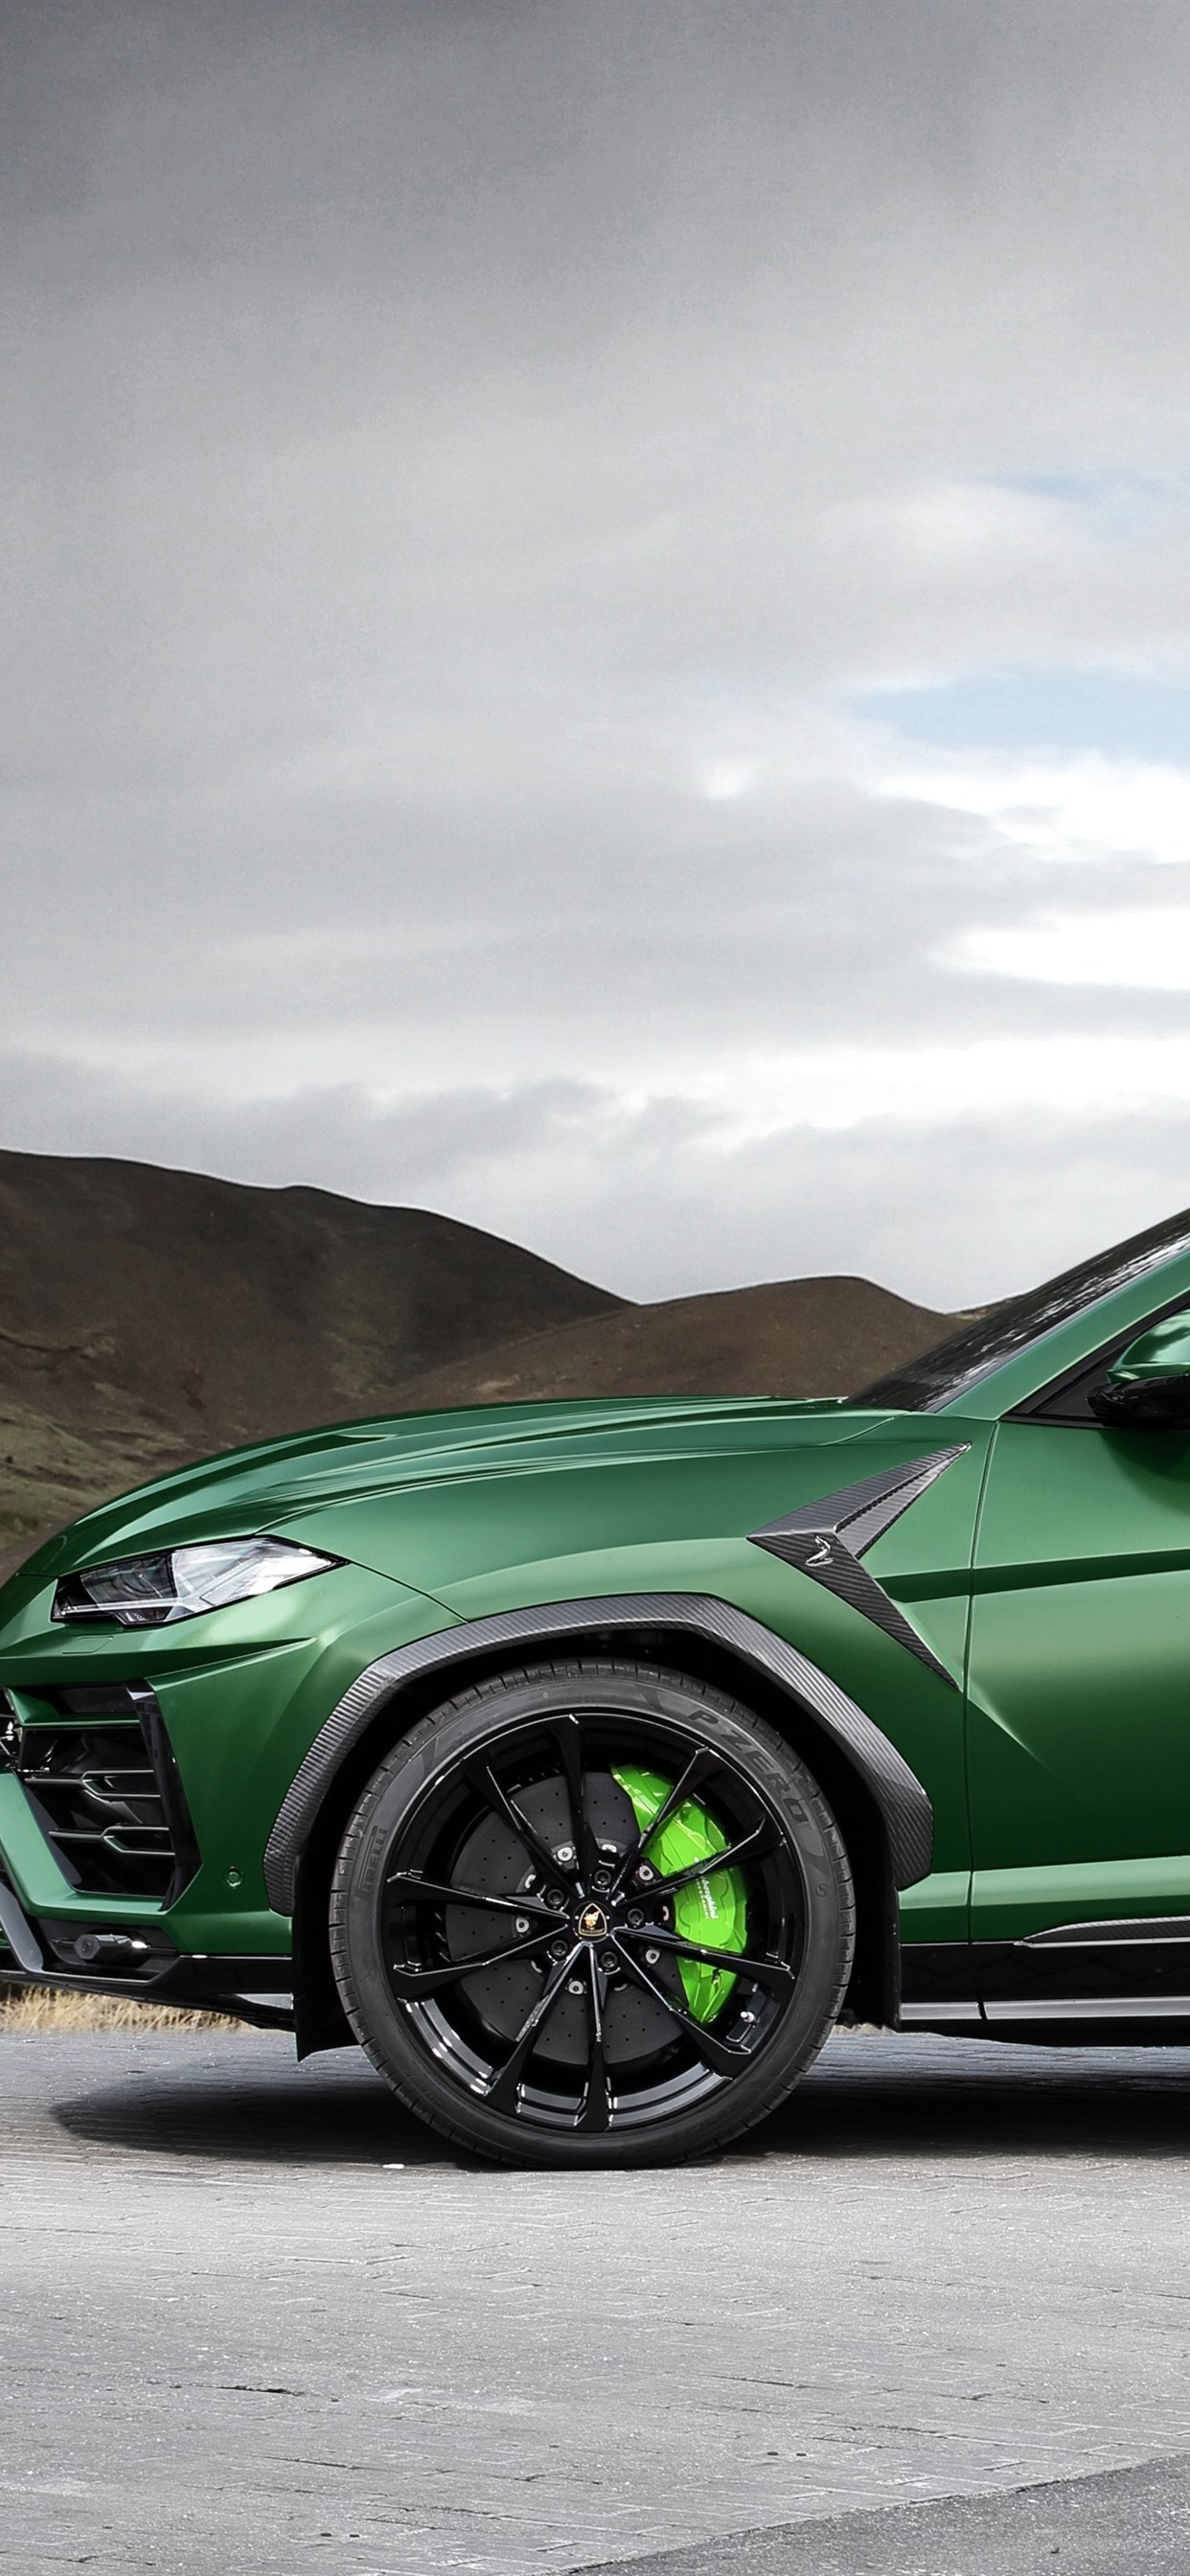 Wallpaper Lamborghini Urus 2018 Green Suv Car Side View 3840x2160